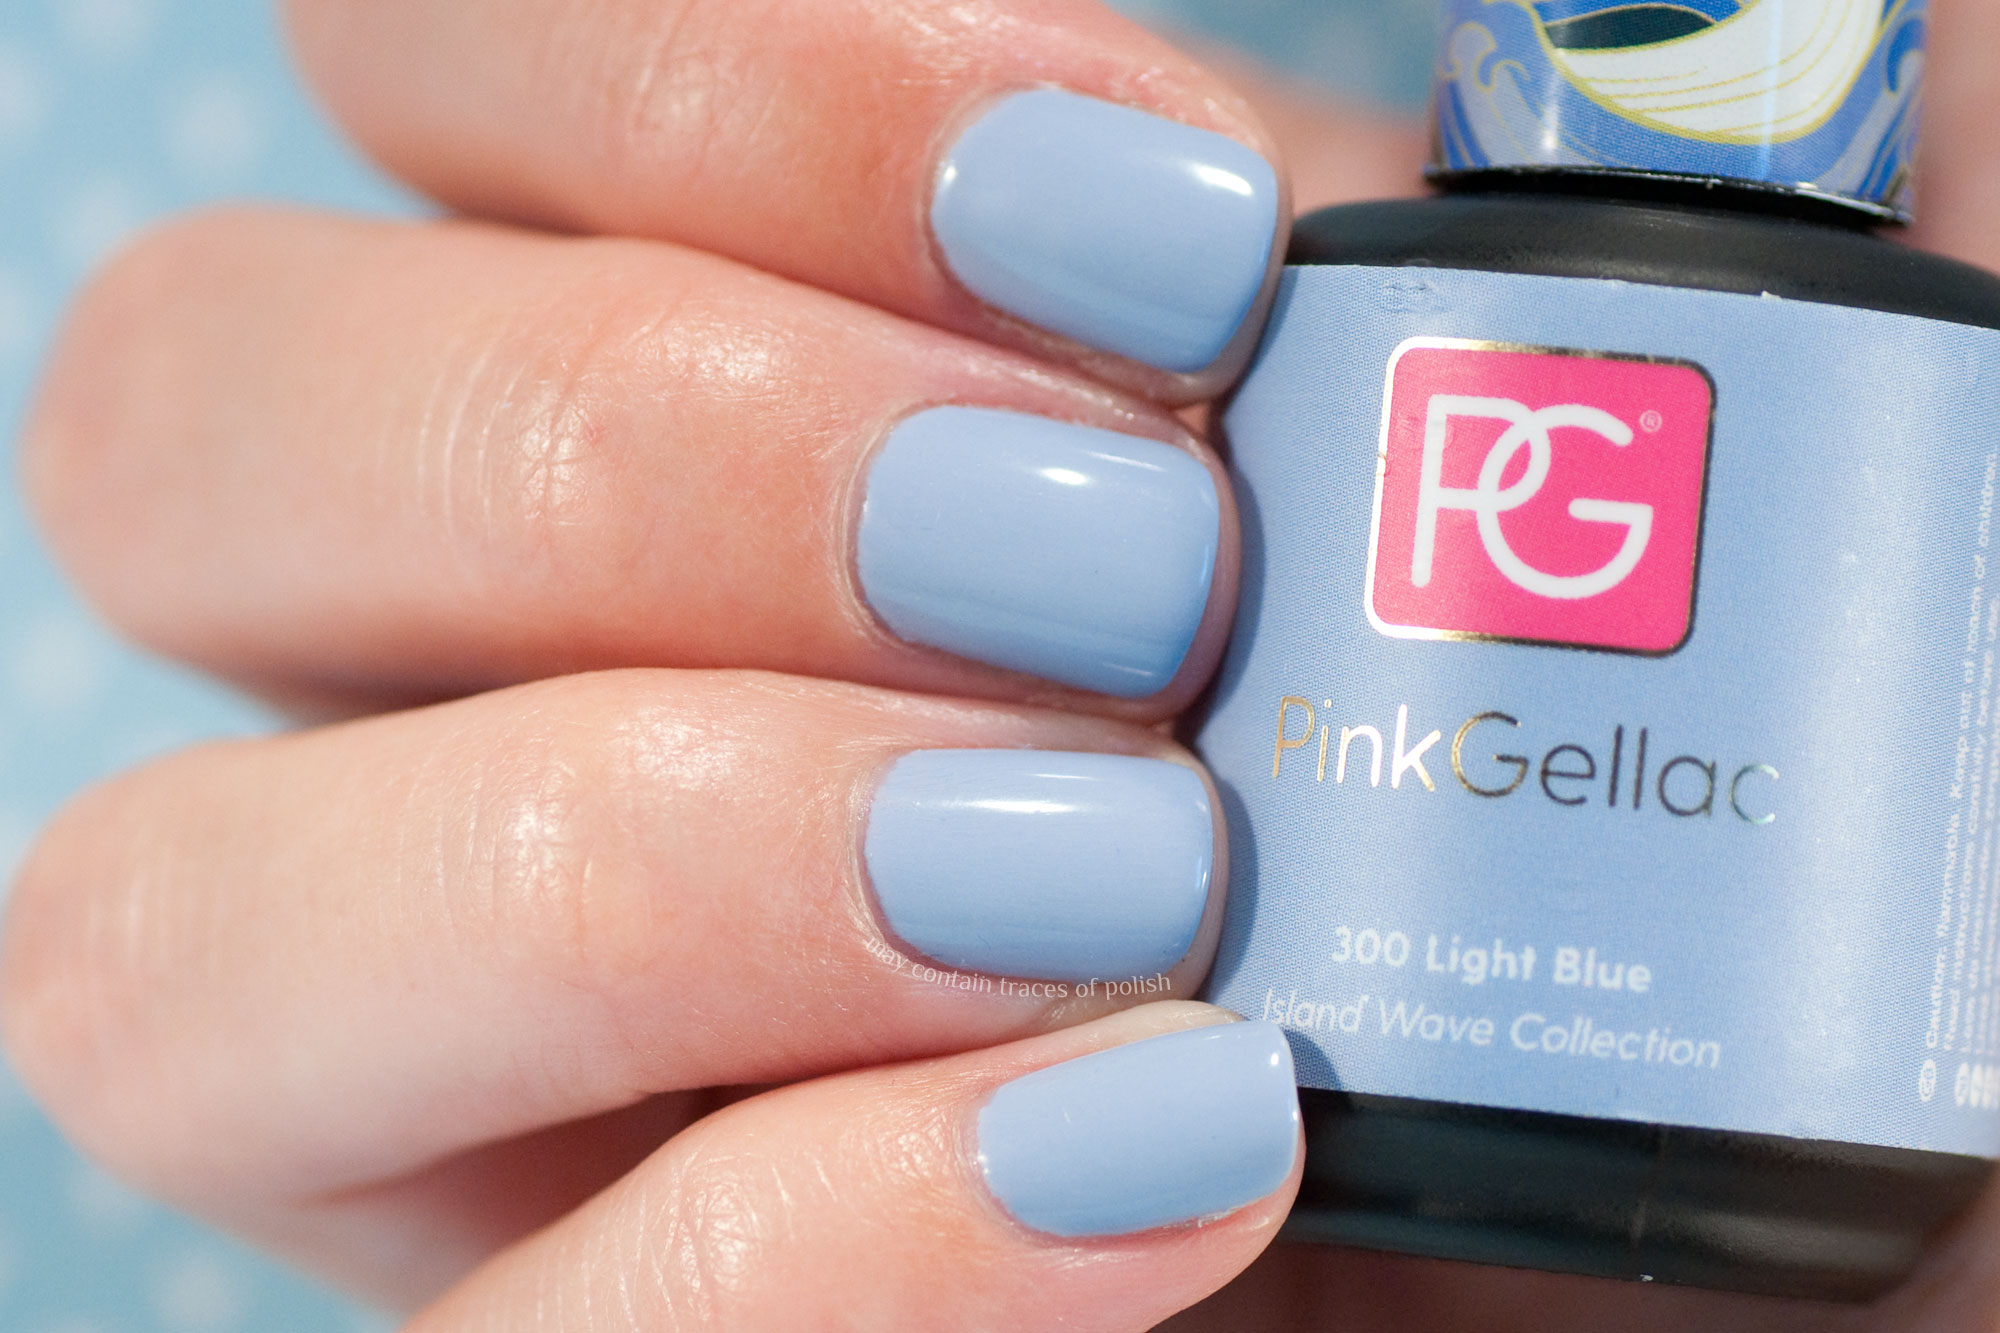 Pink Gellac 300 Light Blue - Island Wave Collection